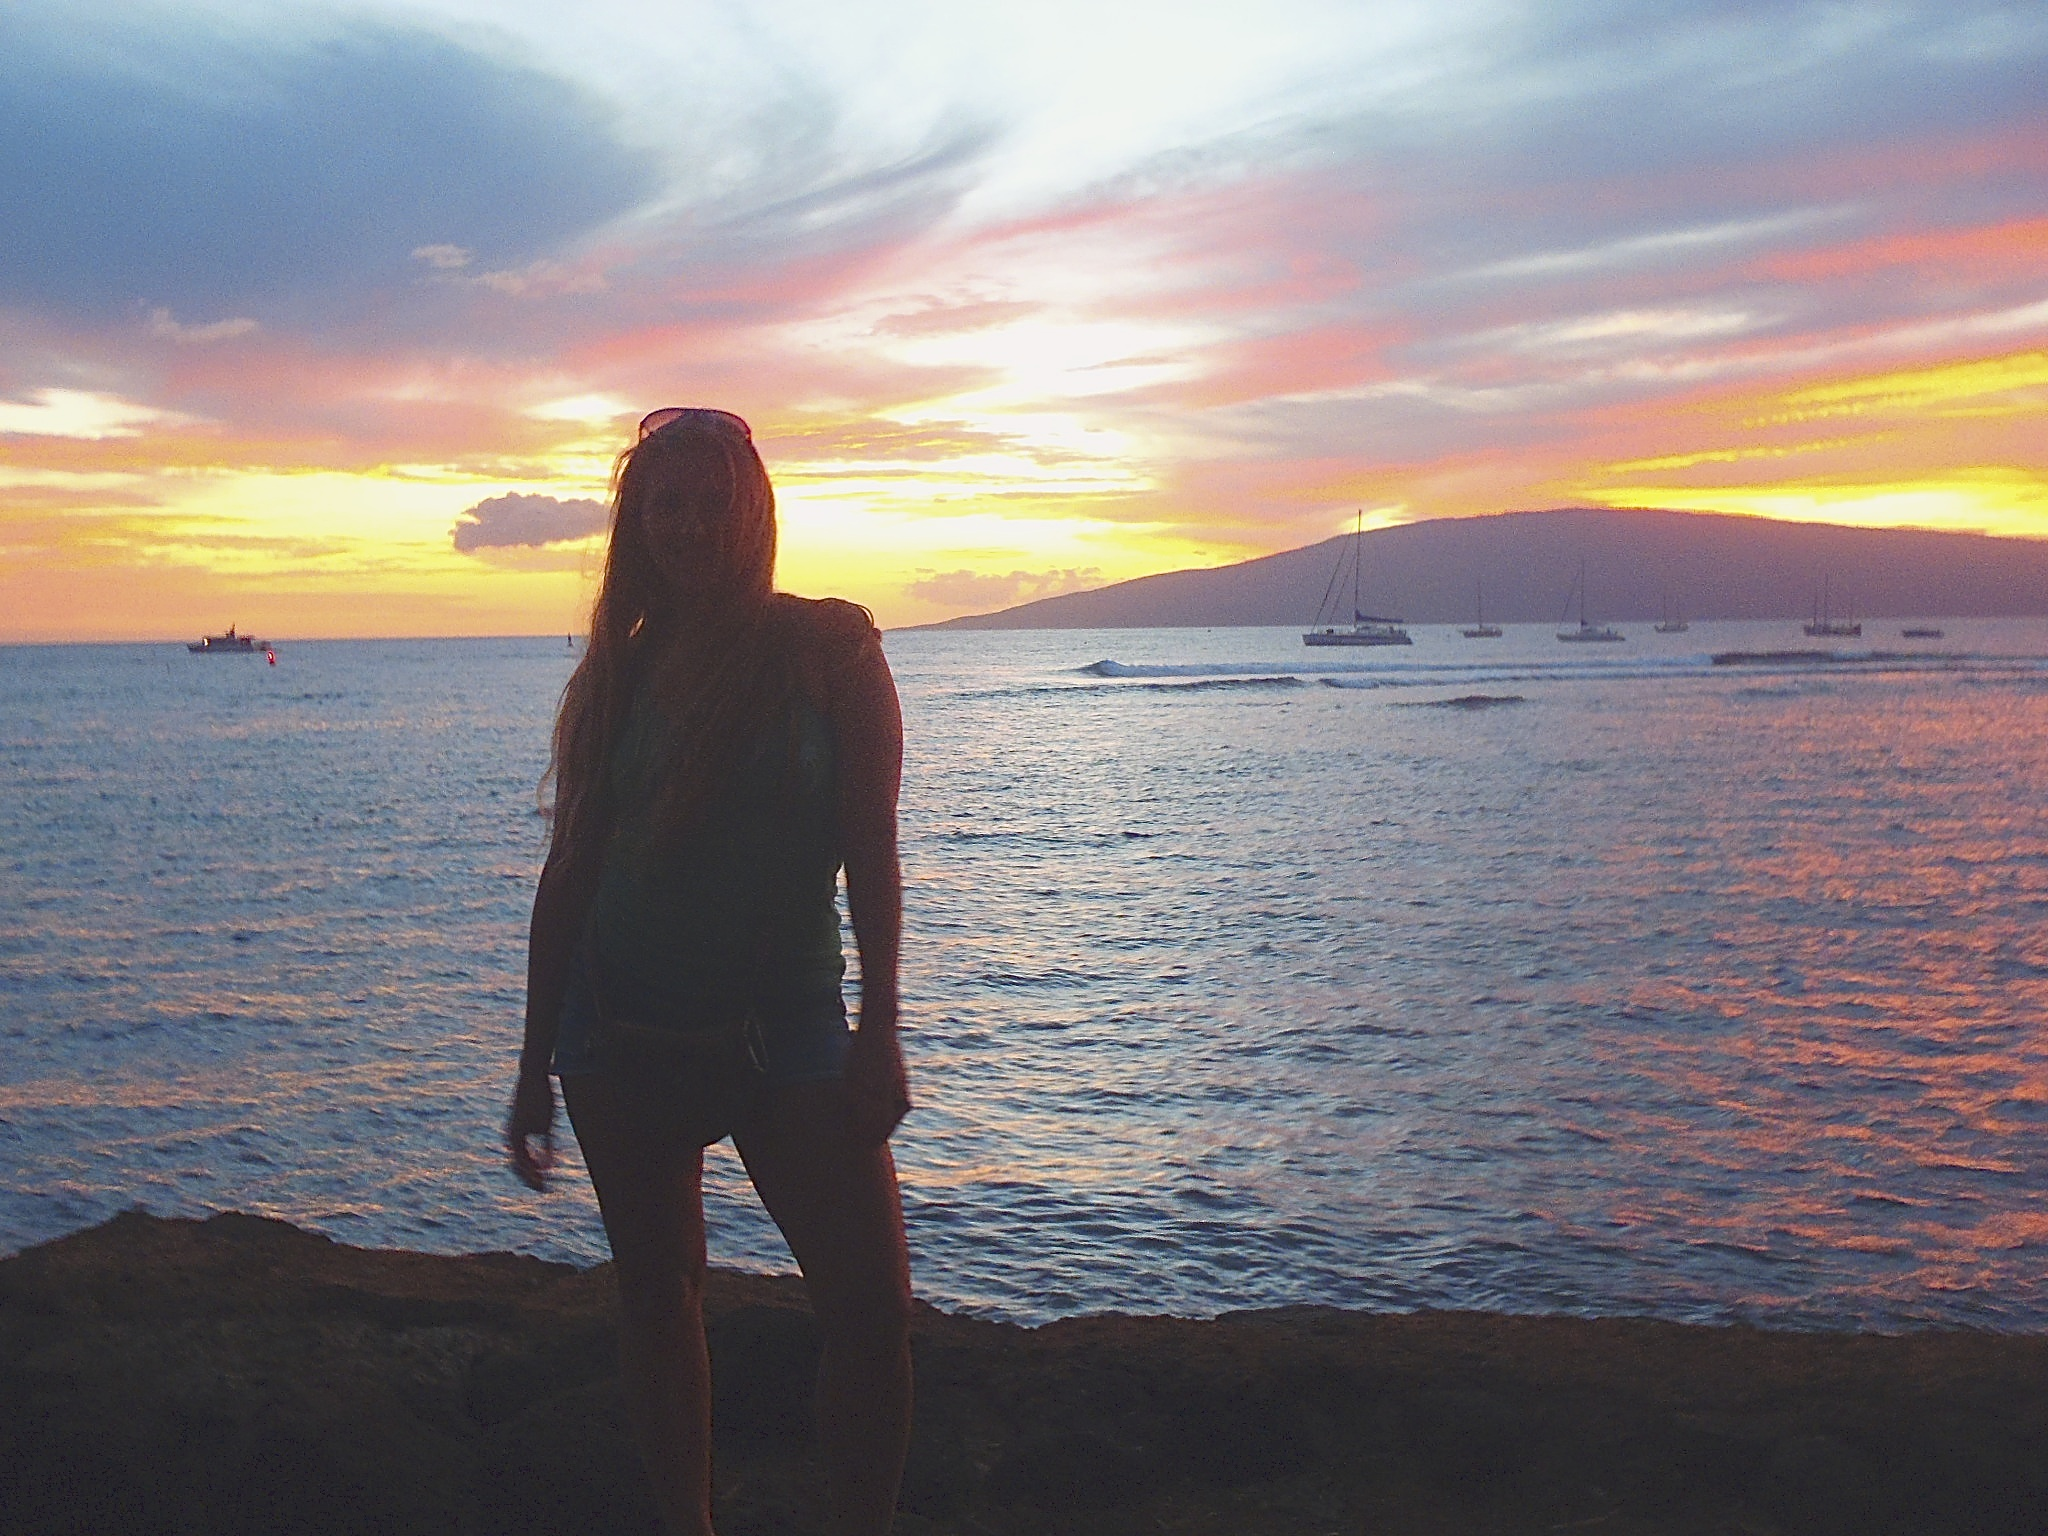 Me in Lahaina a few years ago... had to get a sunset photo. :)